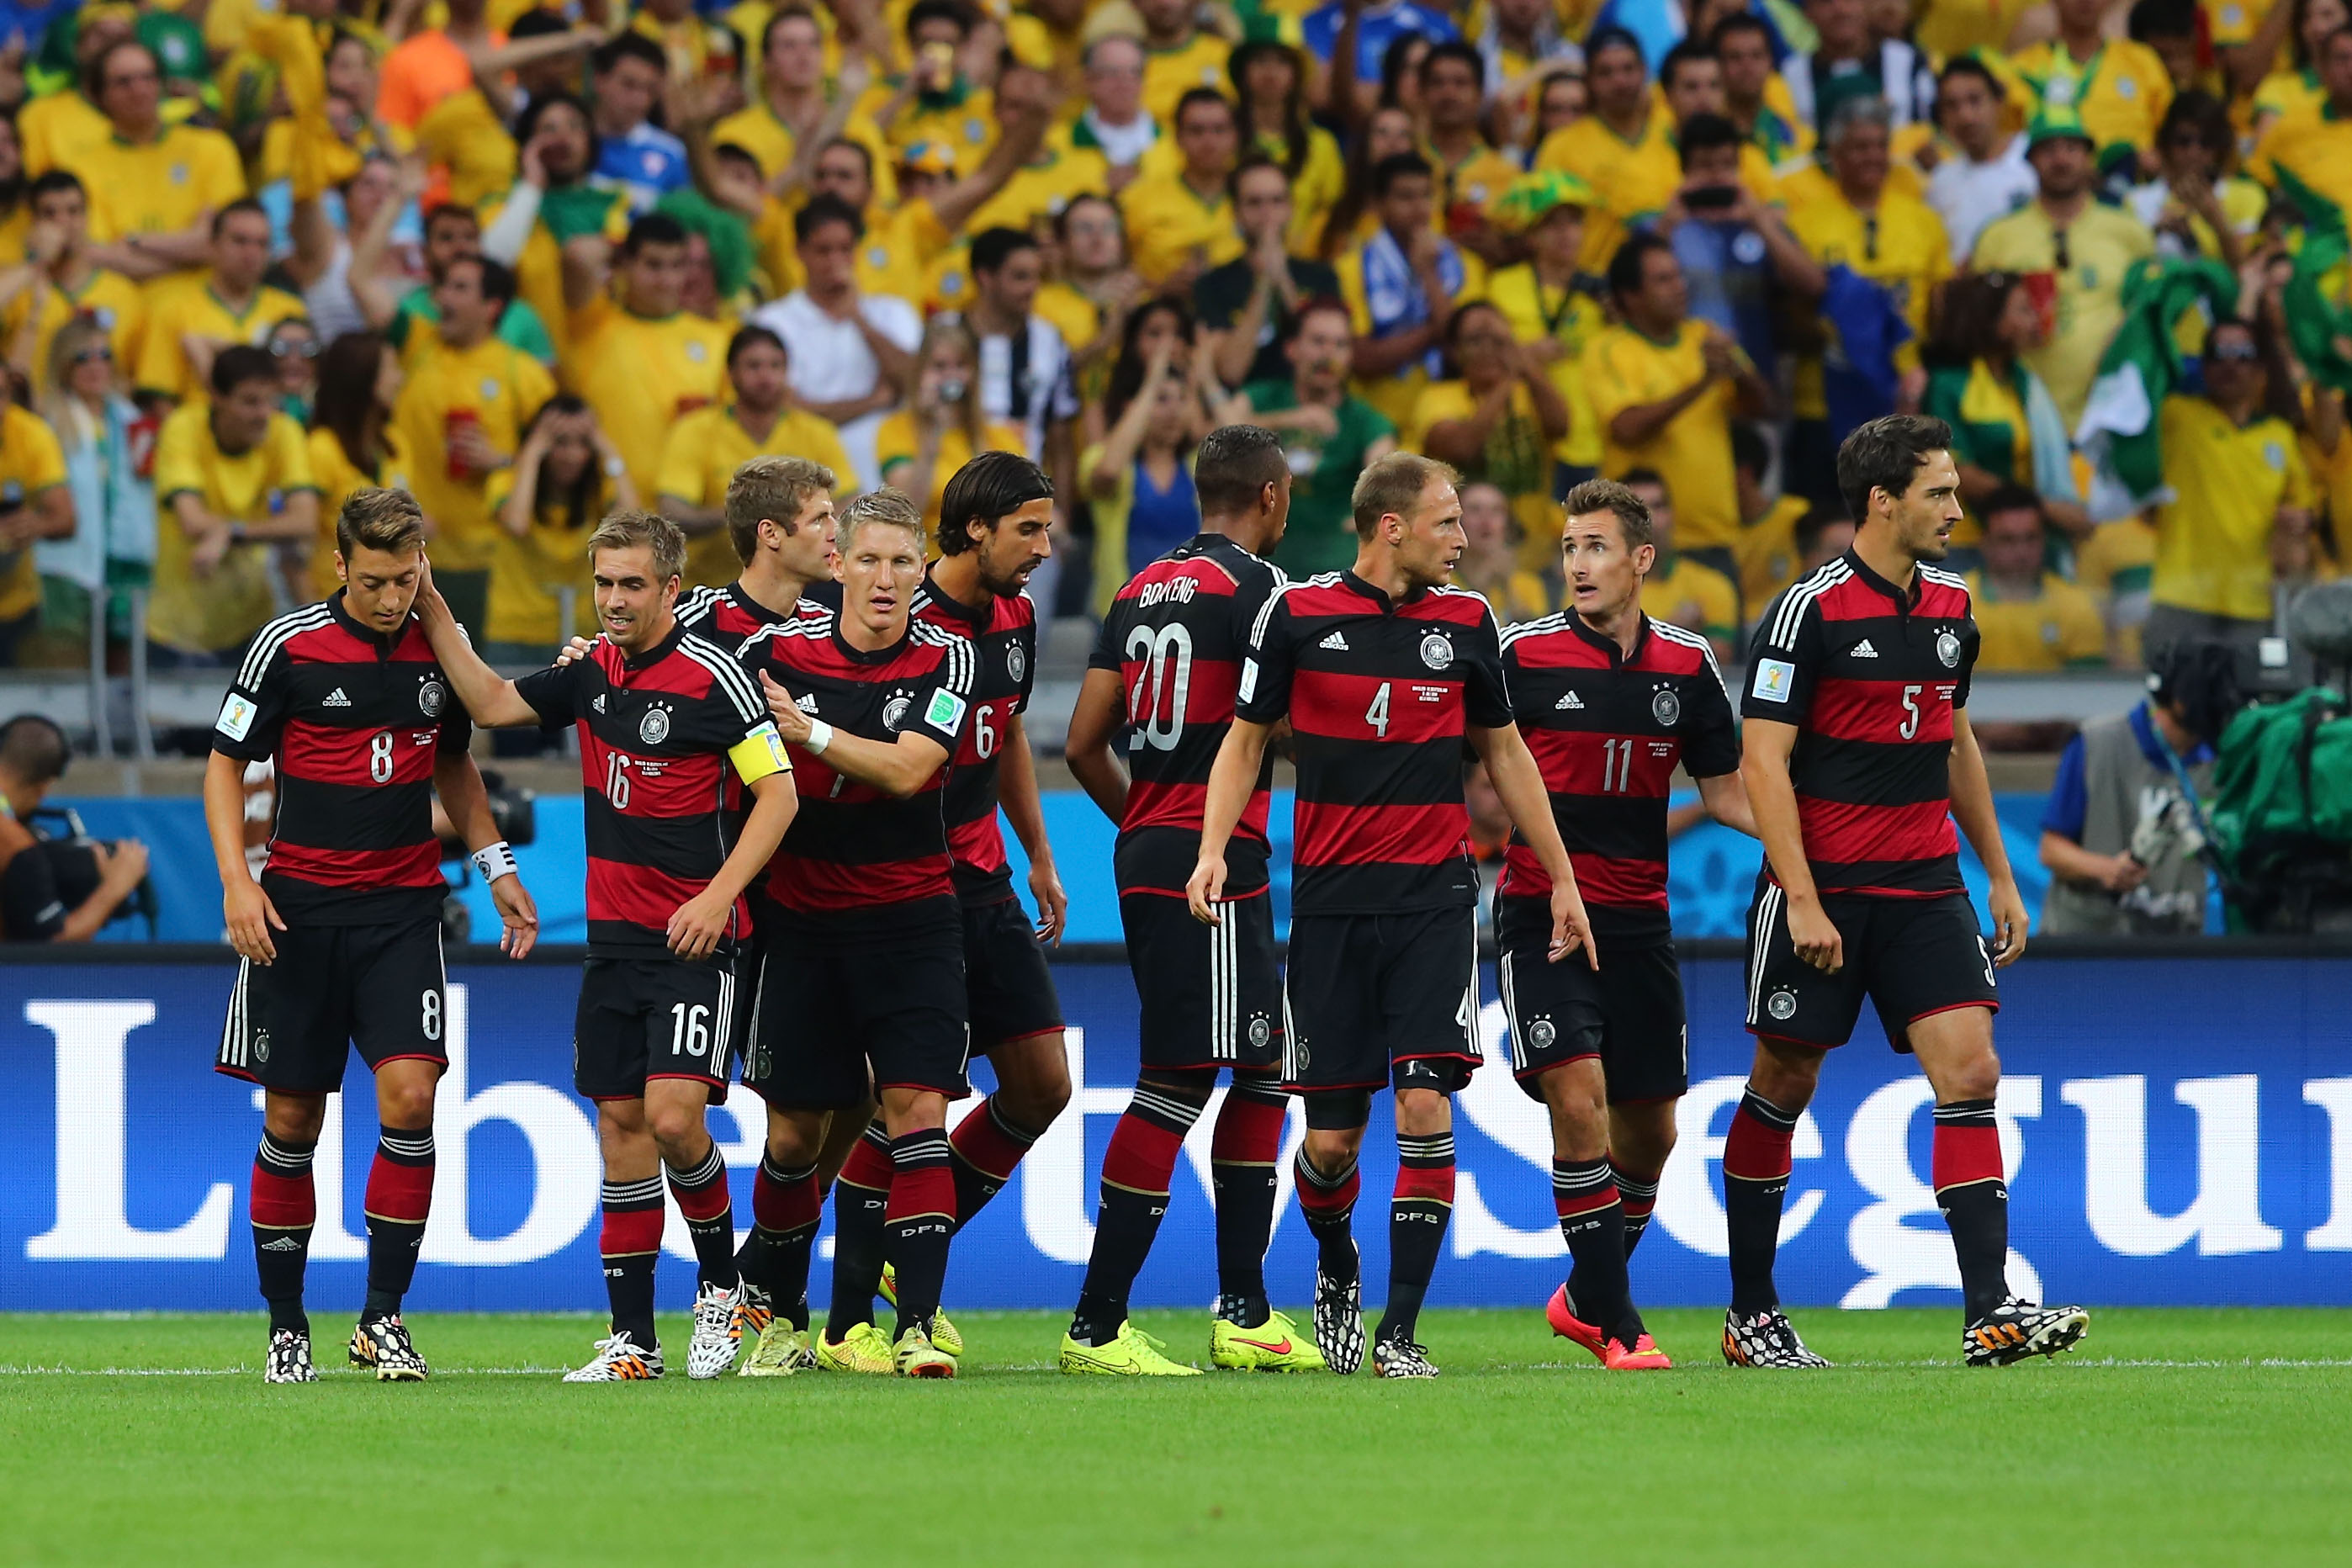 German team celebrates after scoring the opening goal during the World Cup semifinal against Brazil on July 8 in Belo Horizonte, Brazil.